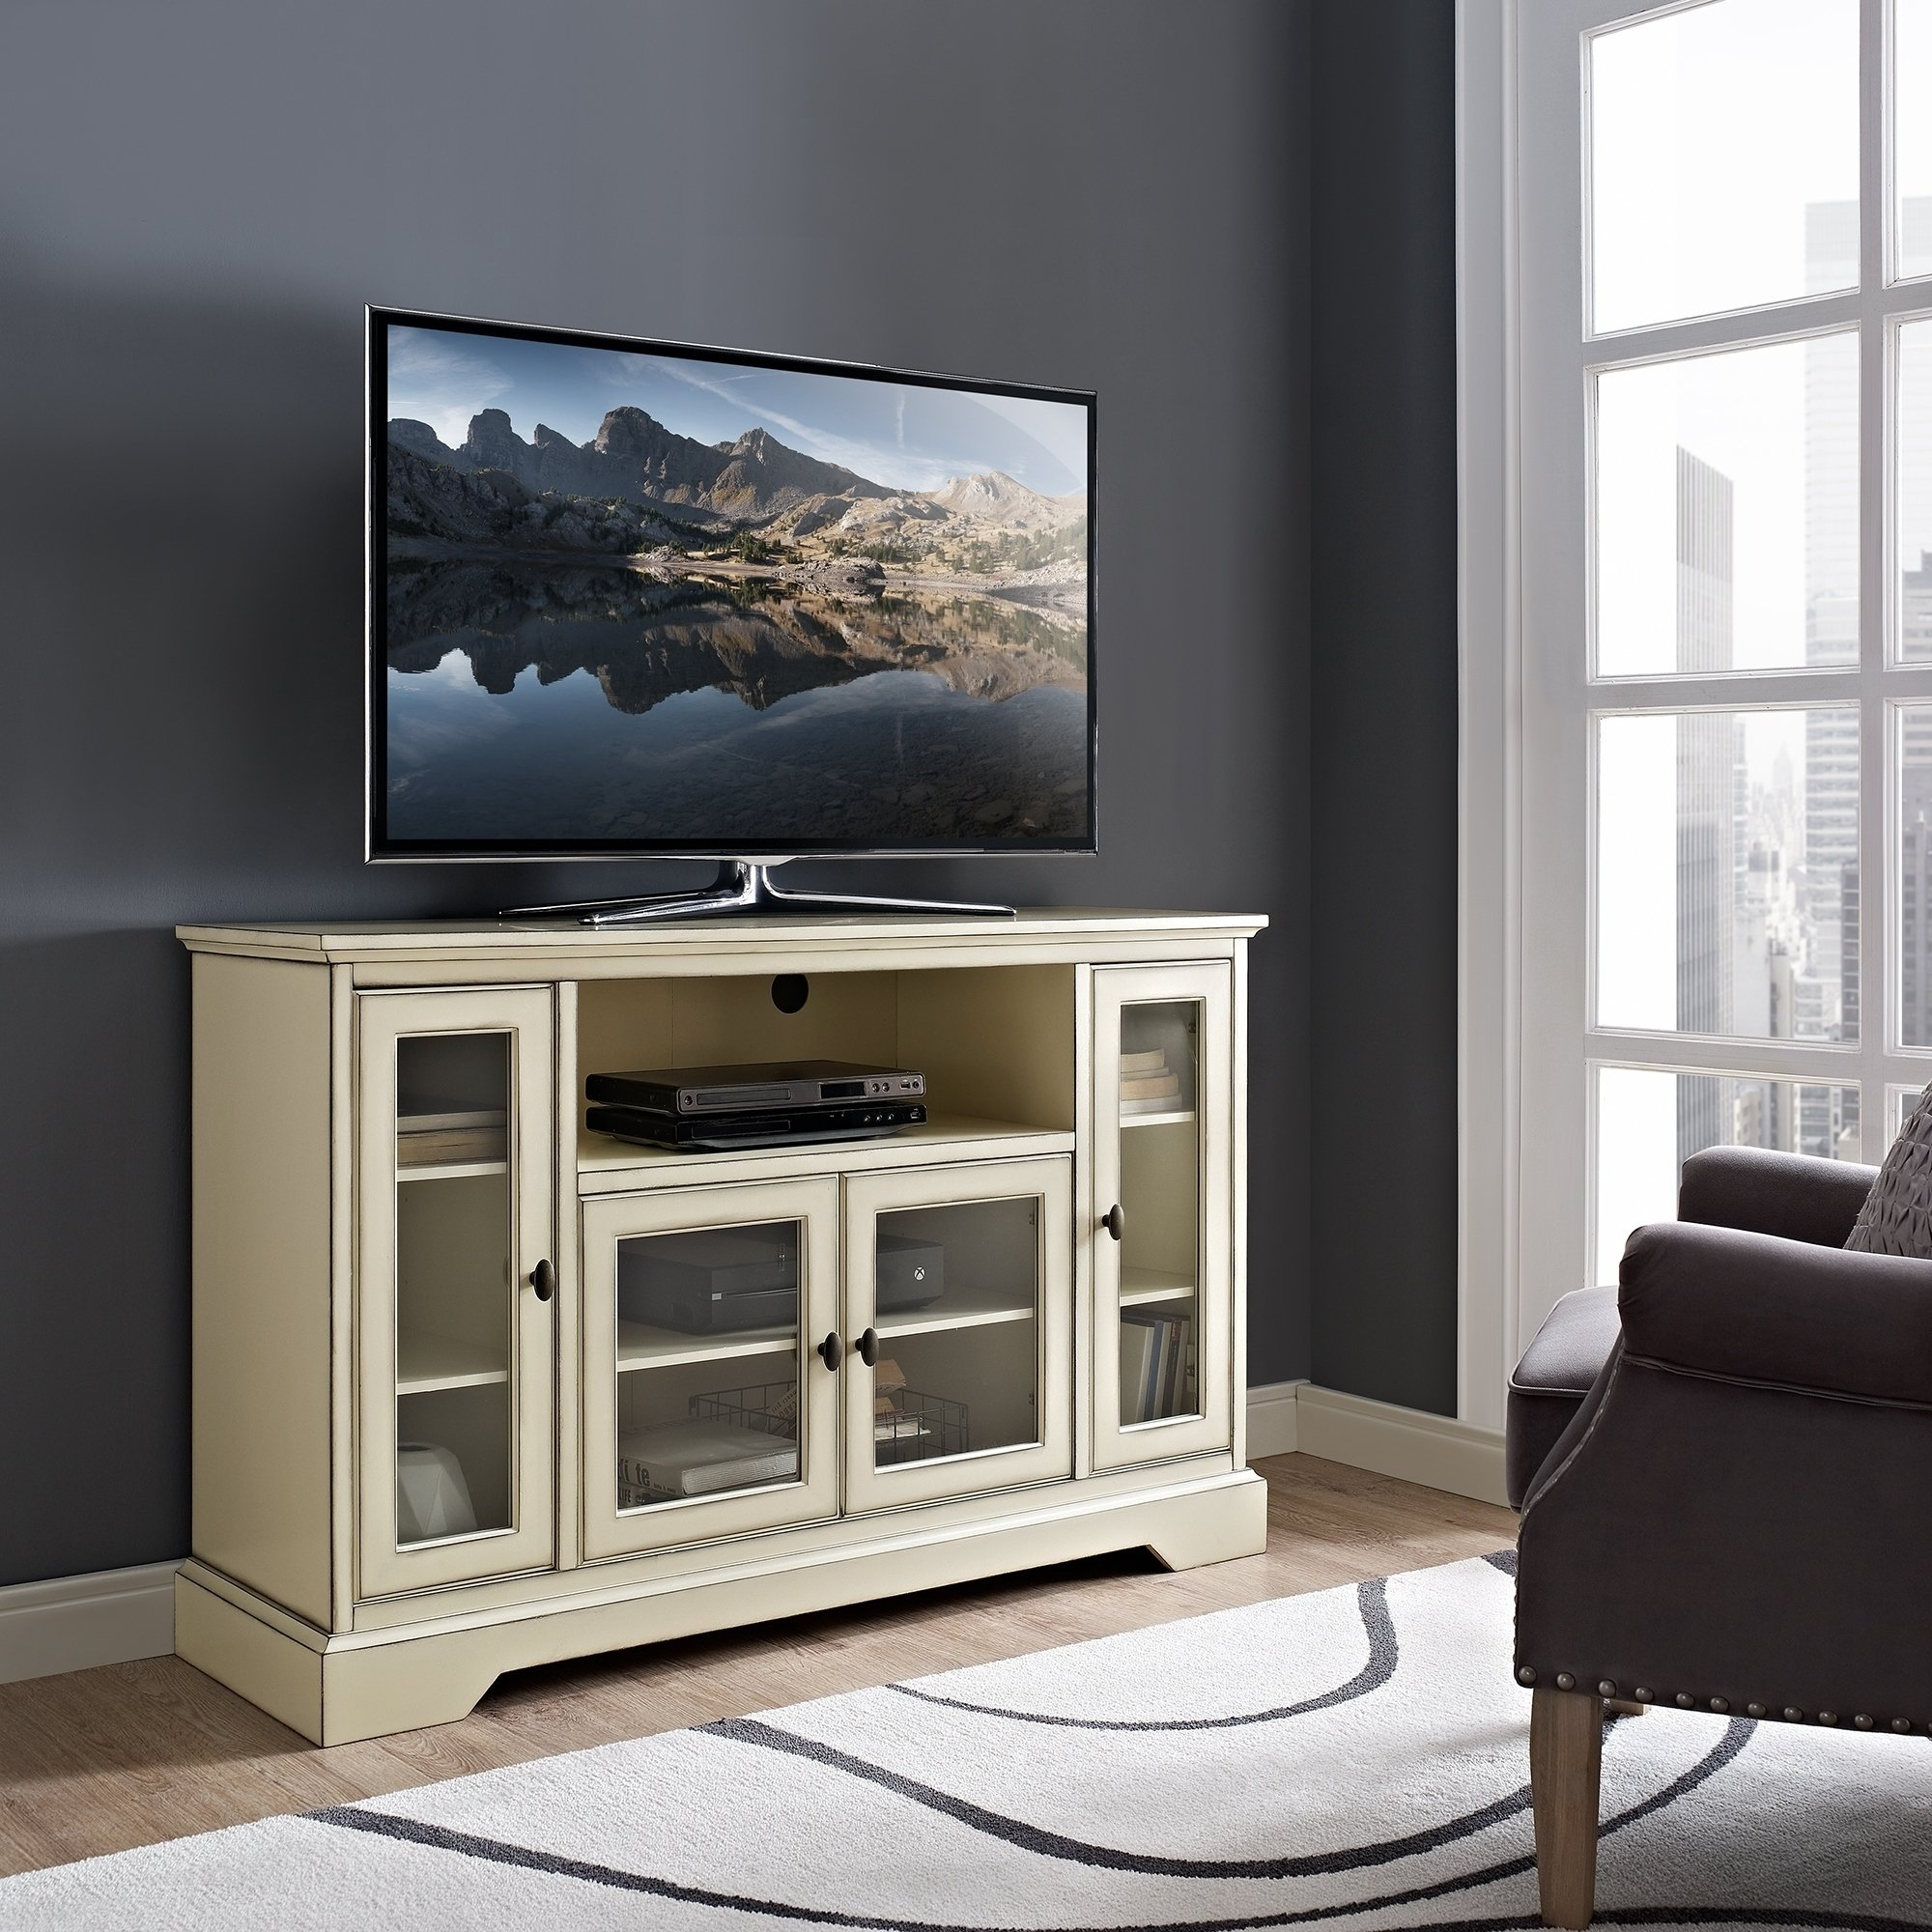 Buy Grey, 42 - 60 Inches Tv Stands & Entertainment Centers Online At pertaining to Rowan 64 Inch Tv Stands (Image 9 of 30)